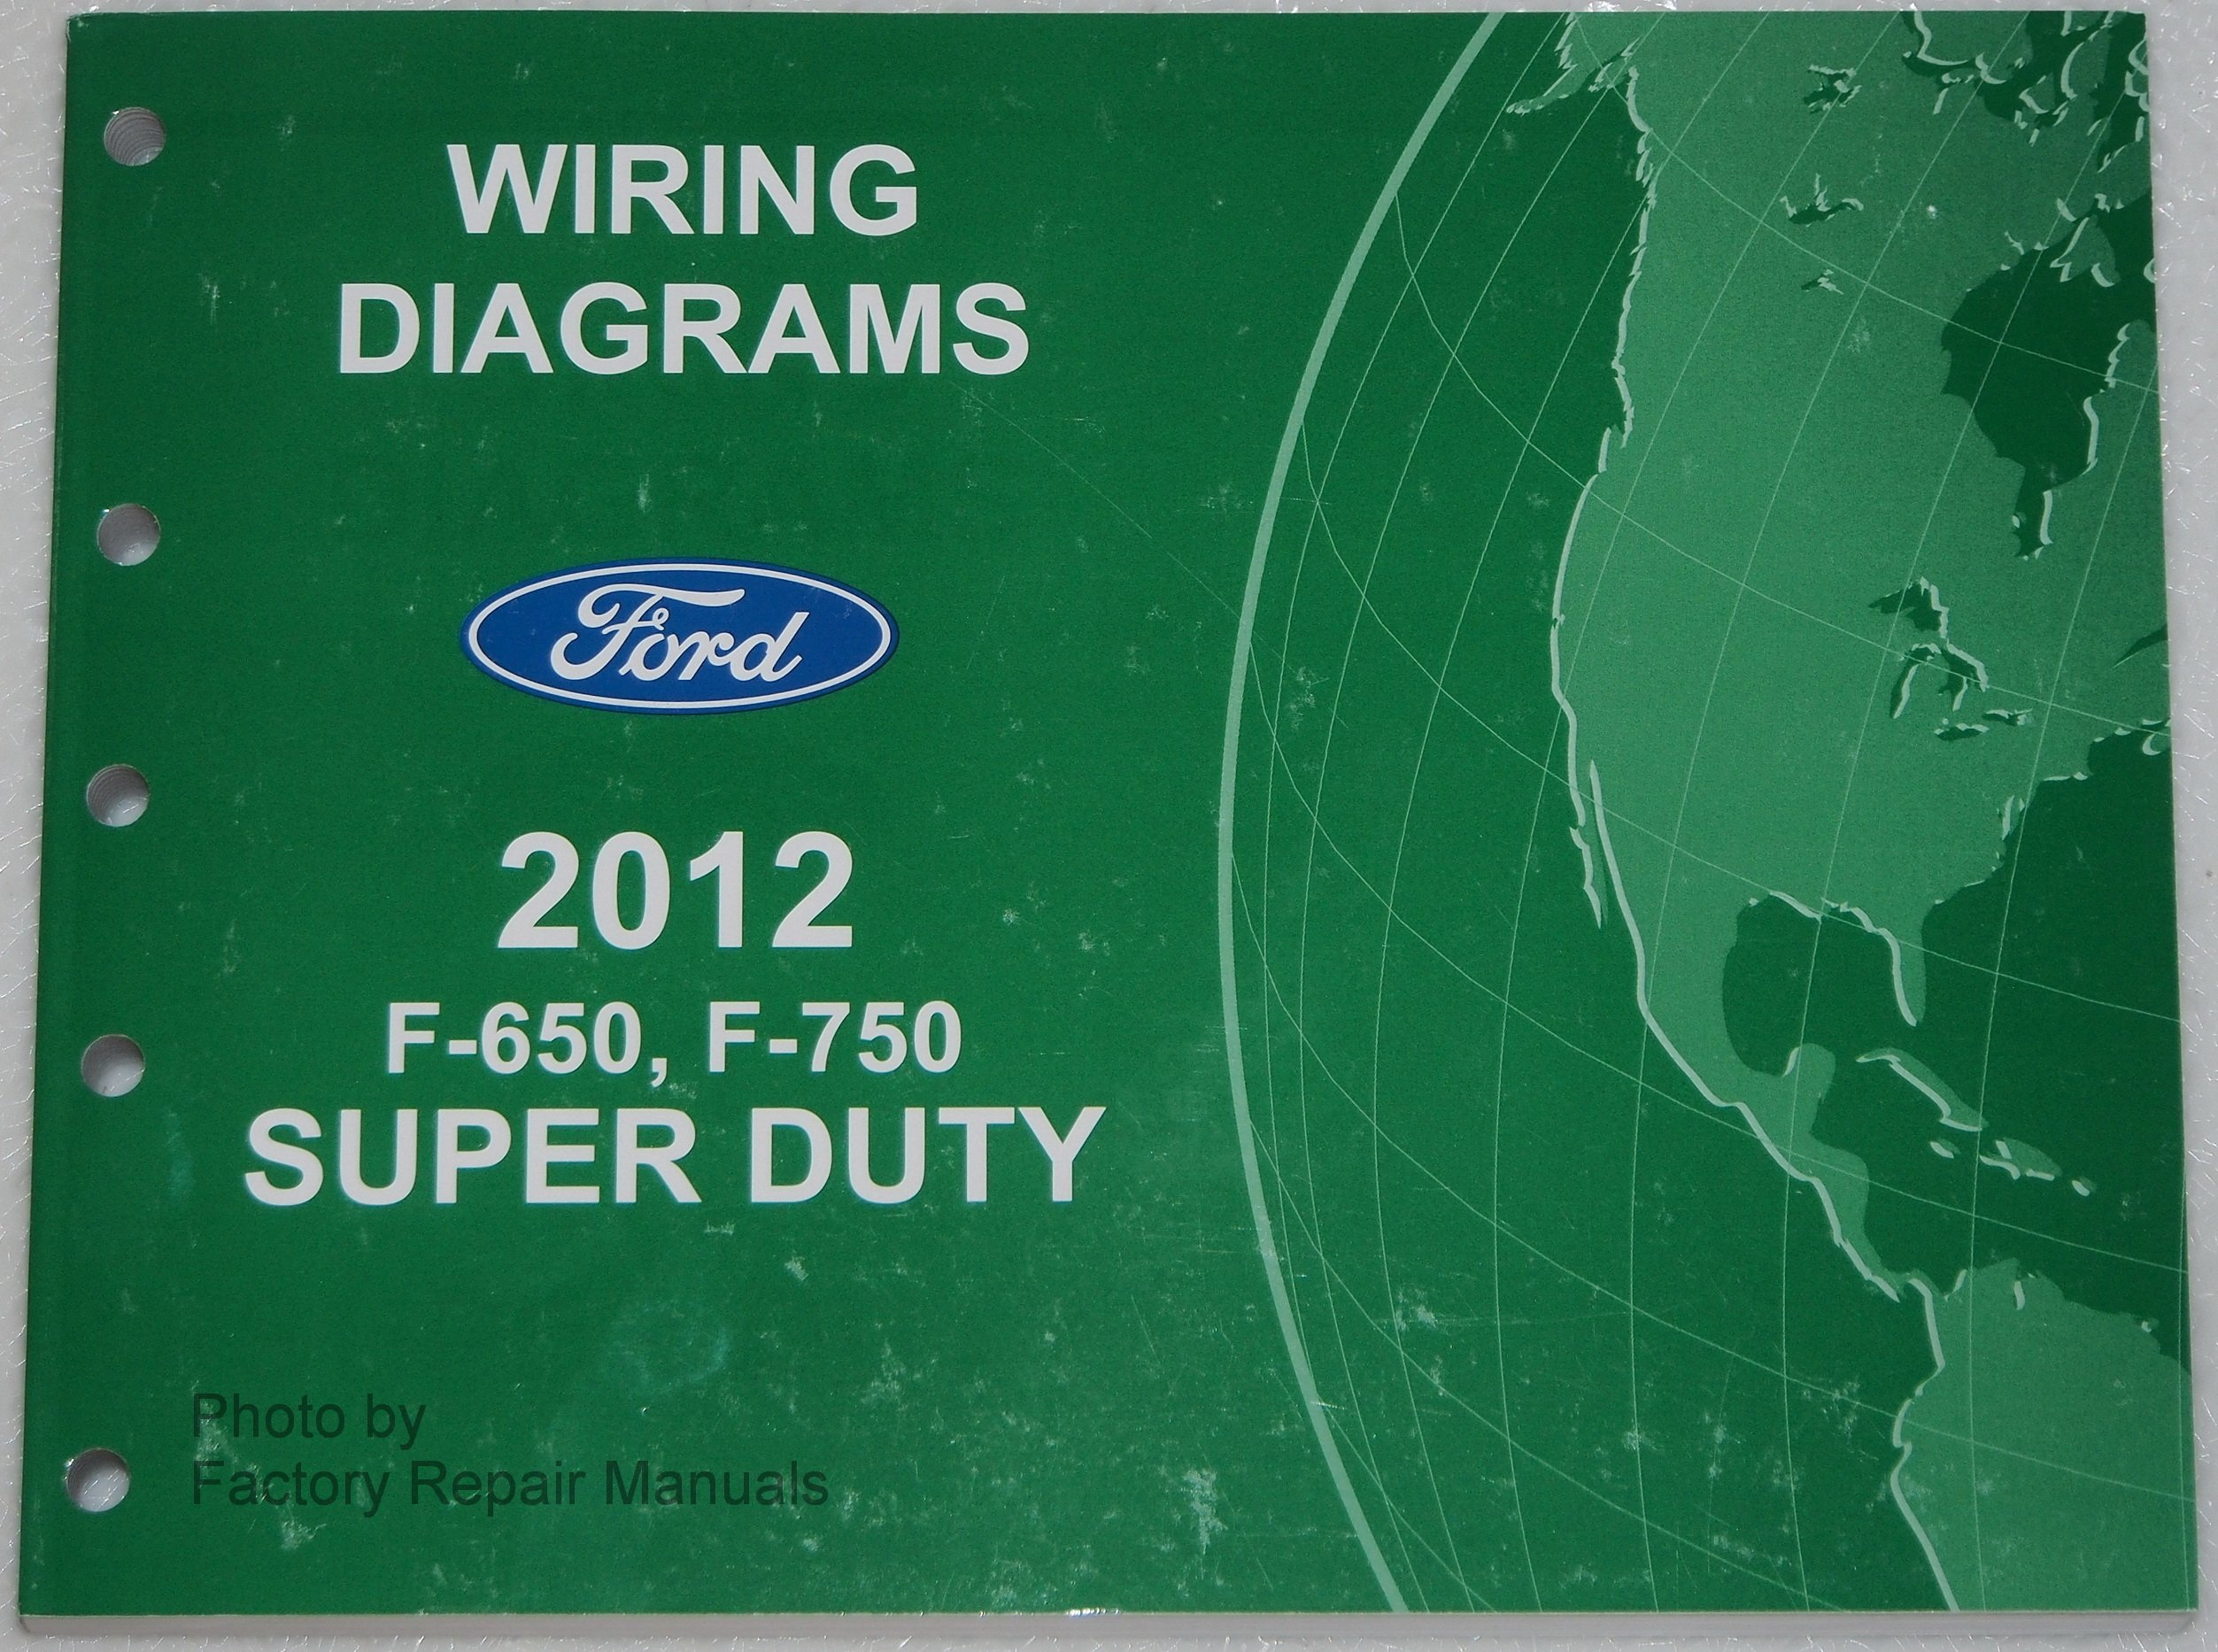 91KkFIScY%2BL 2012 f650 f750 wiring diagram ford motor company amazon com books 2013 ford wiring diagram at fashall.co